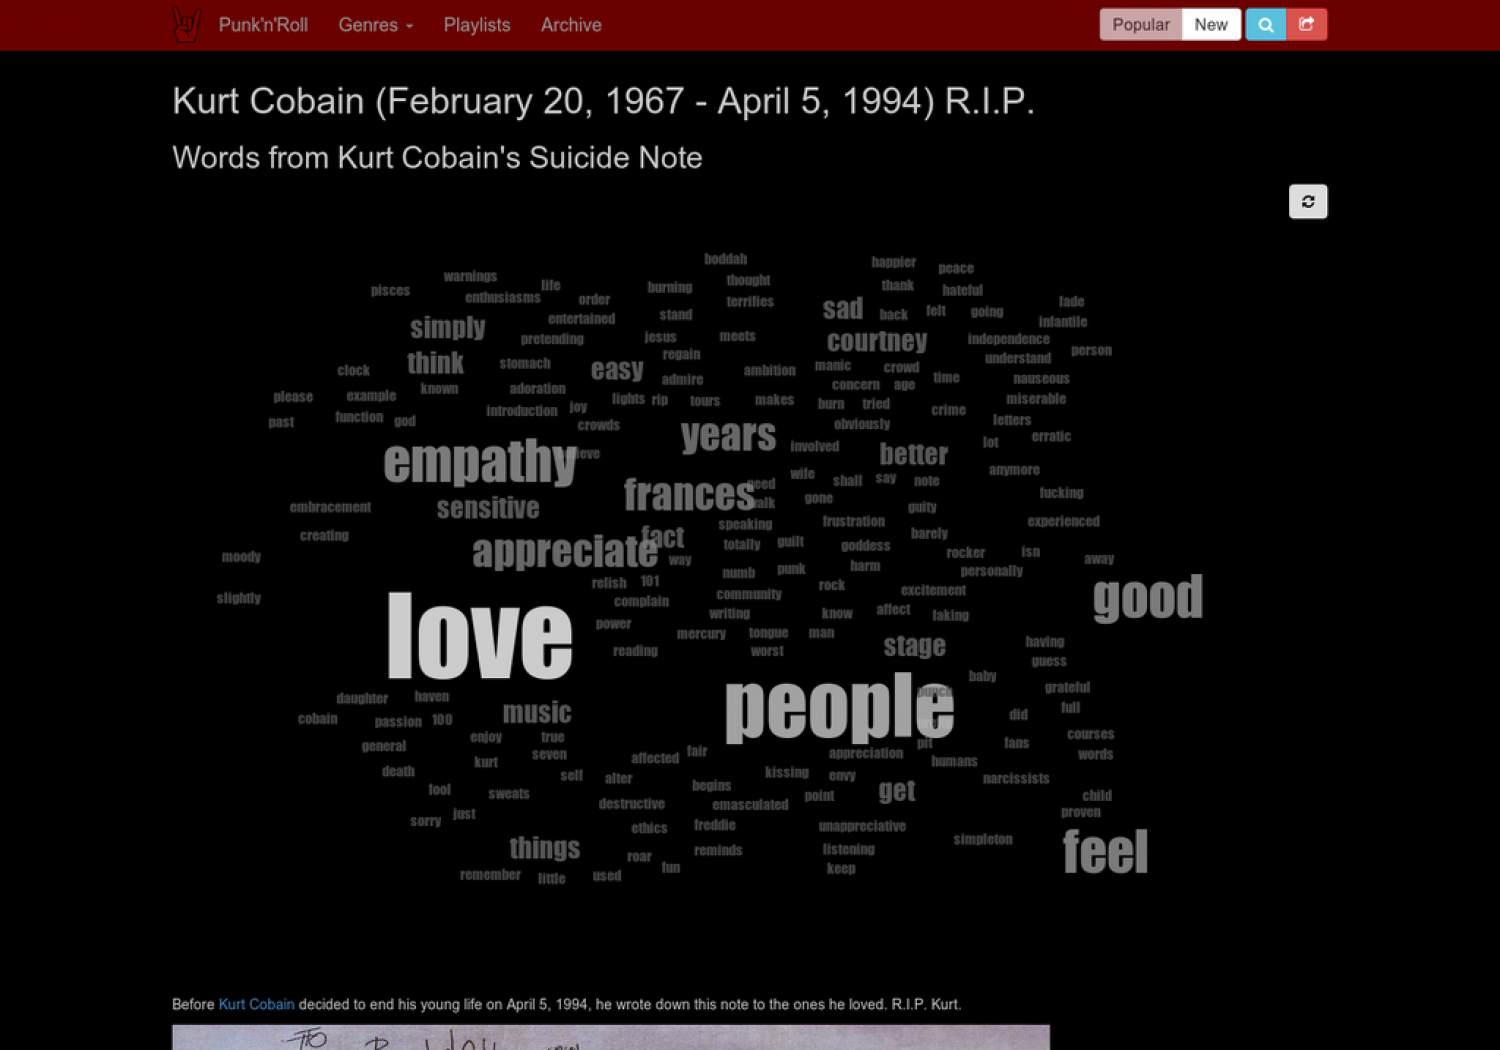 Words from Kurt Cobain's Suicide Note Infographic